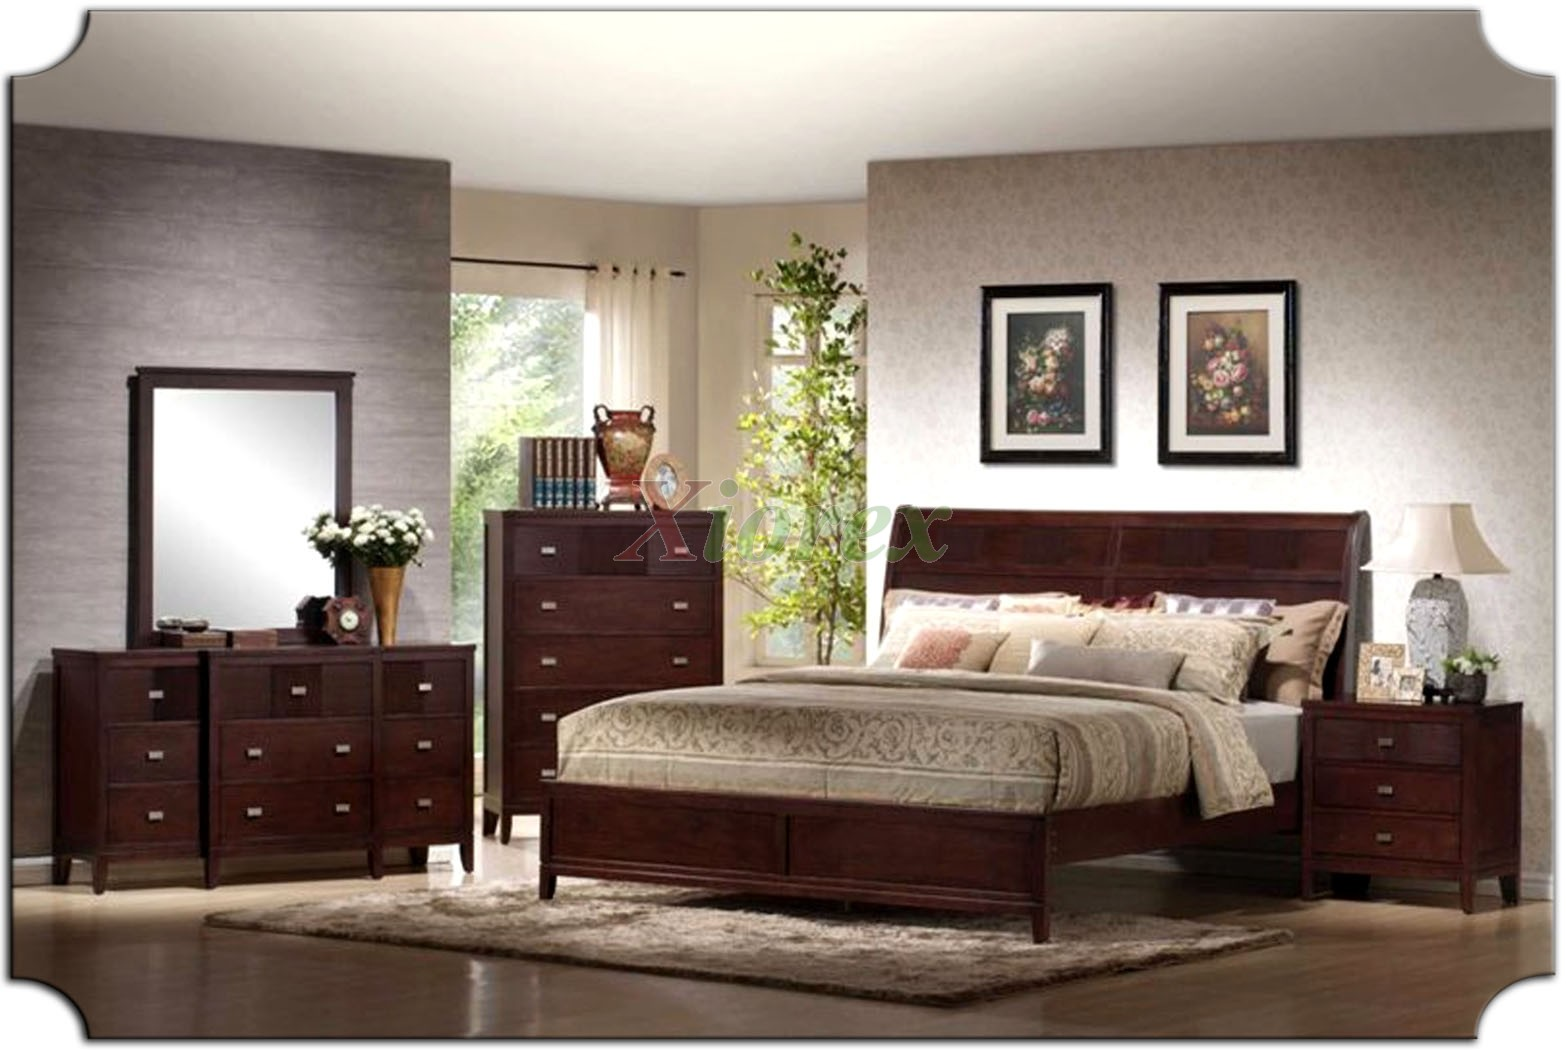 Platform bedroom furniture set with curved headboard beds for Bed and dresser set